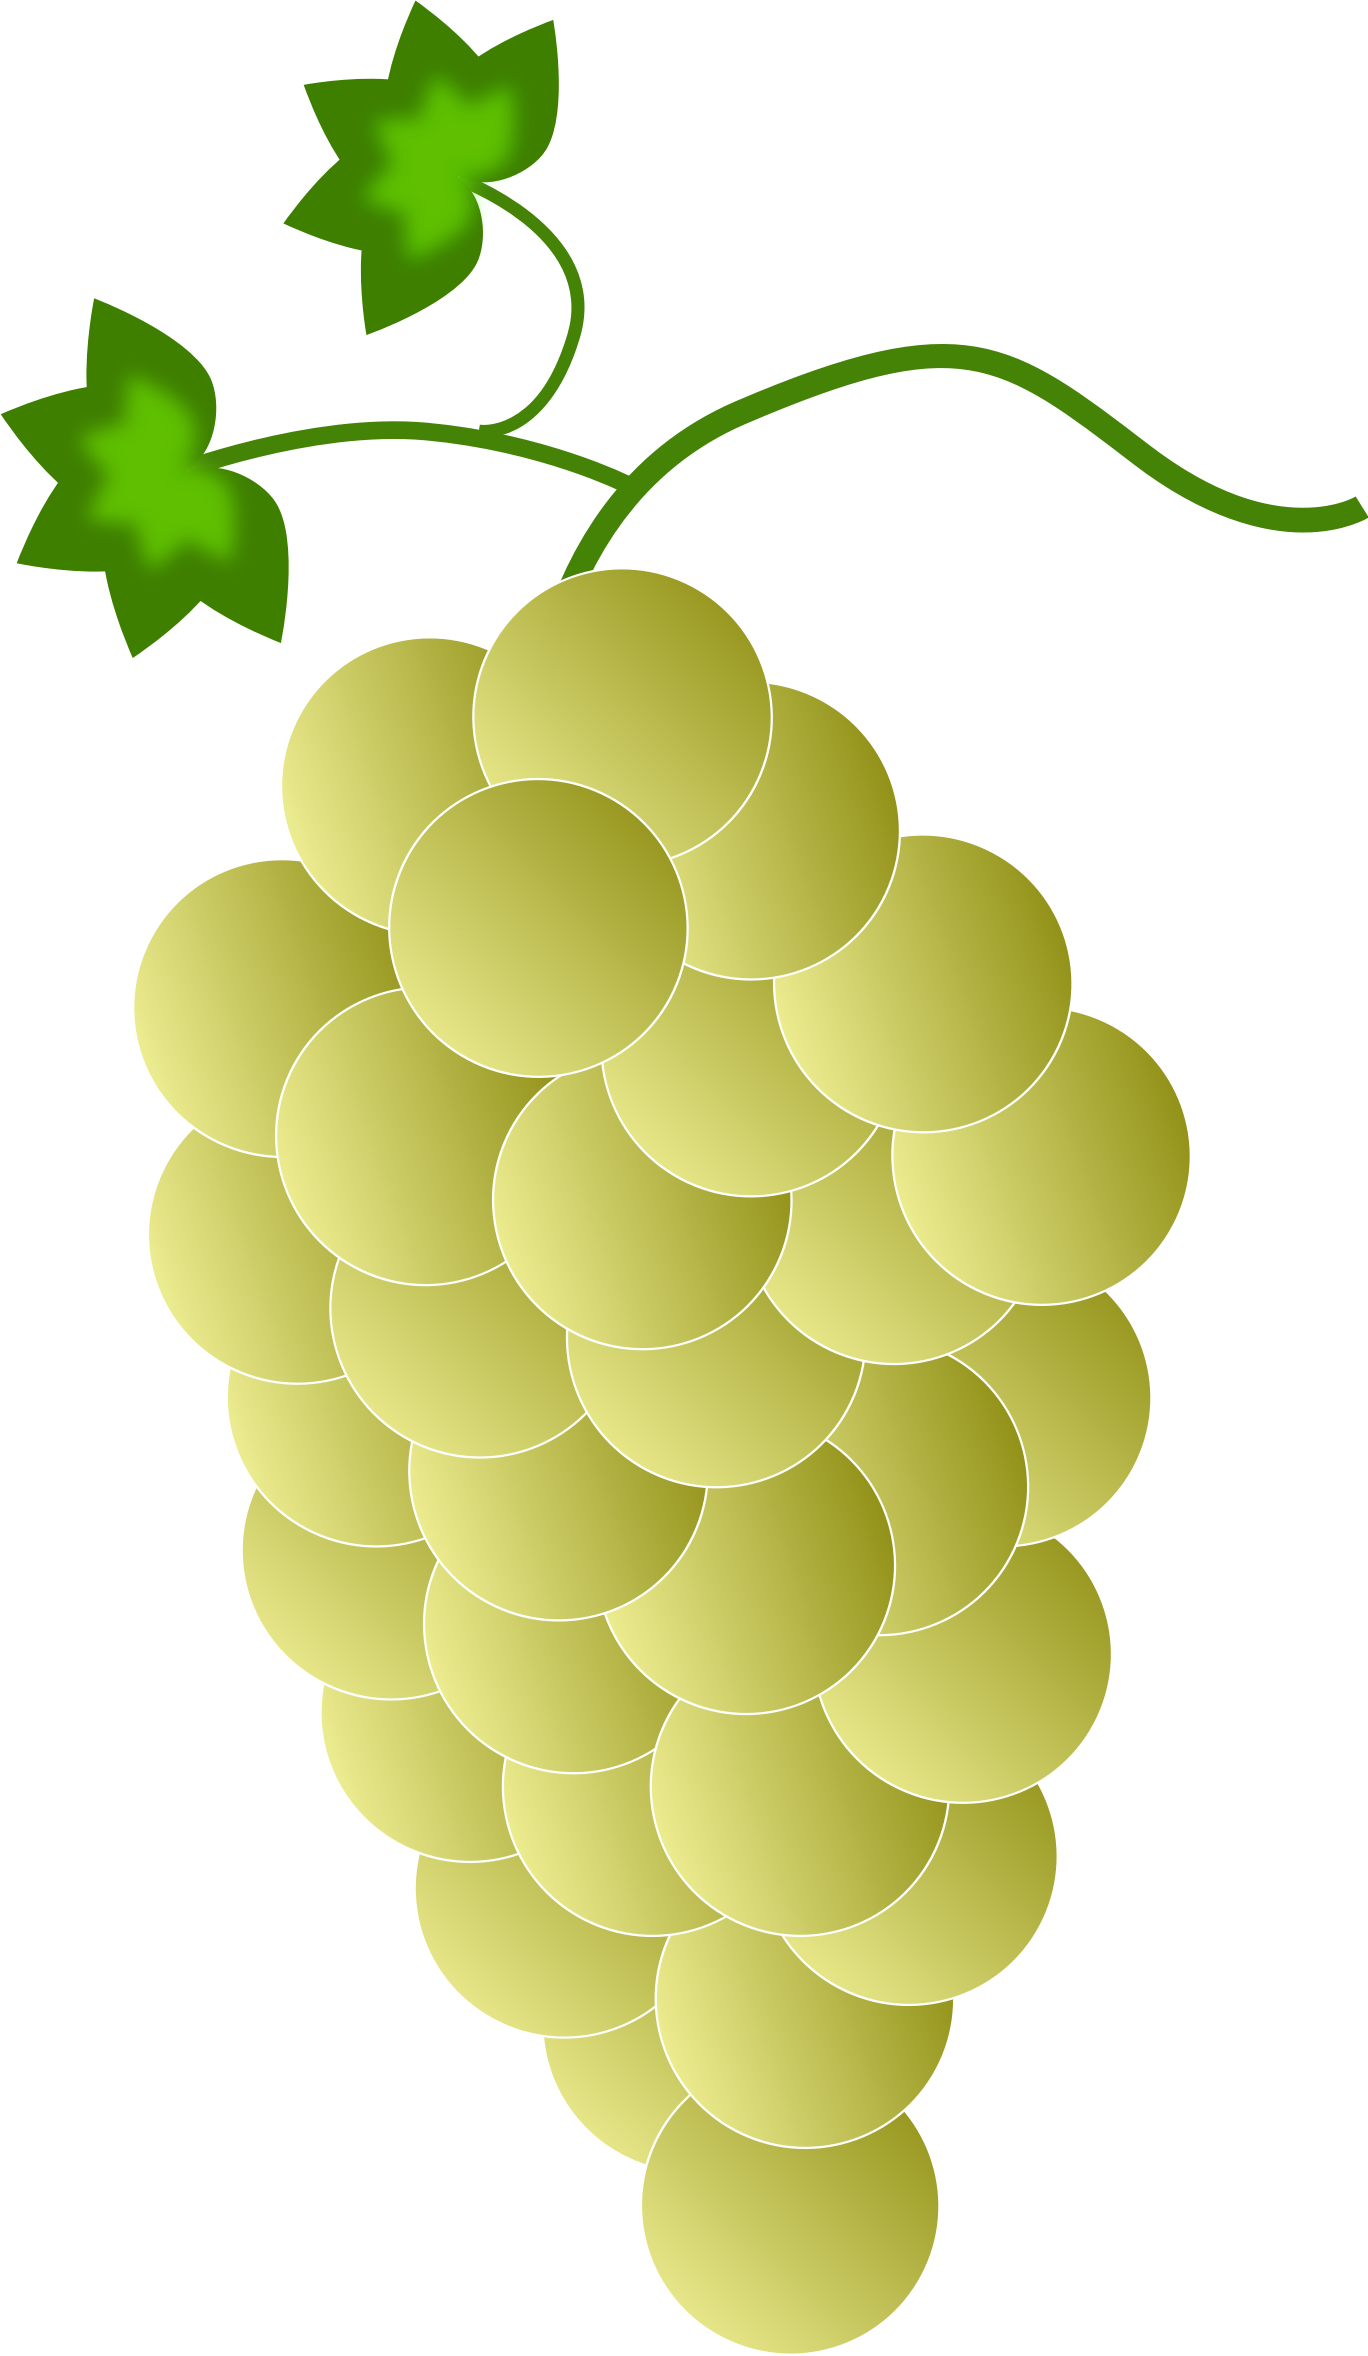 yellow grapes by Astro